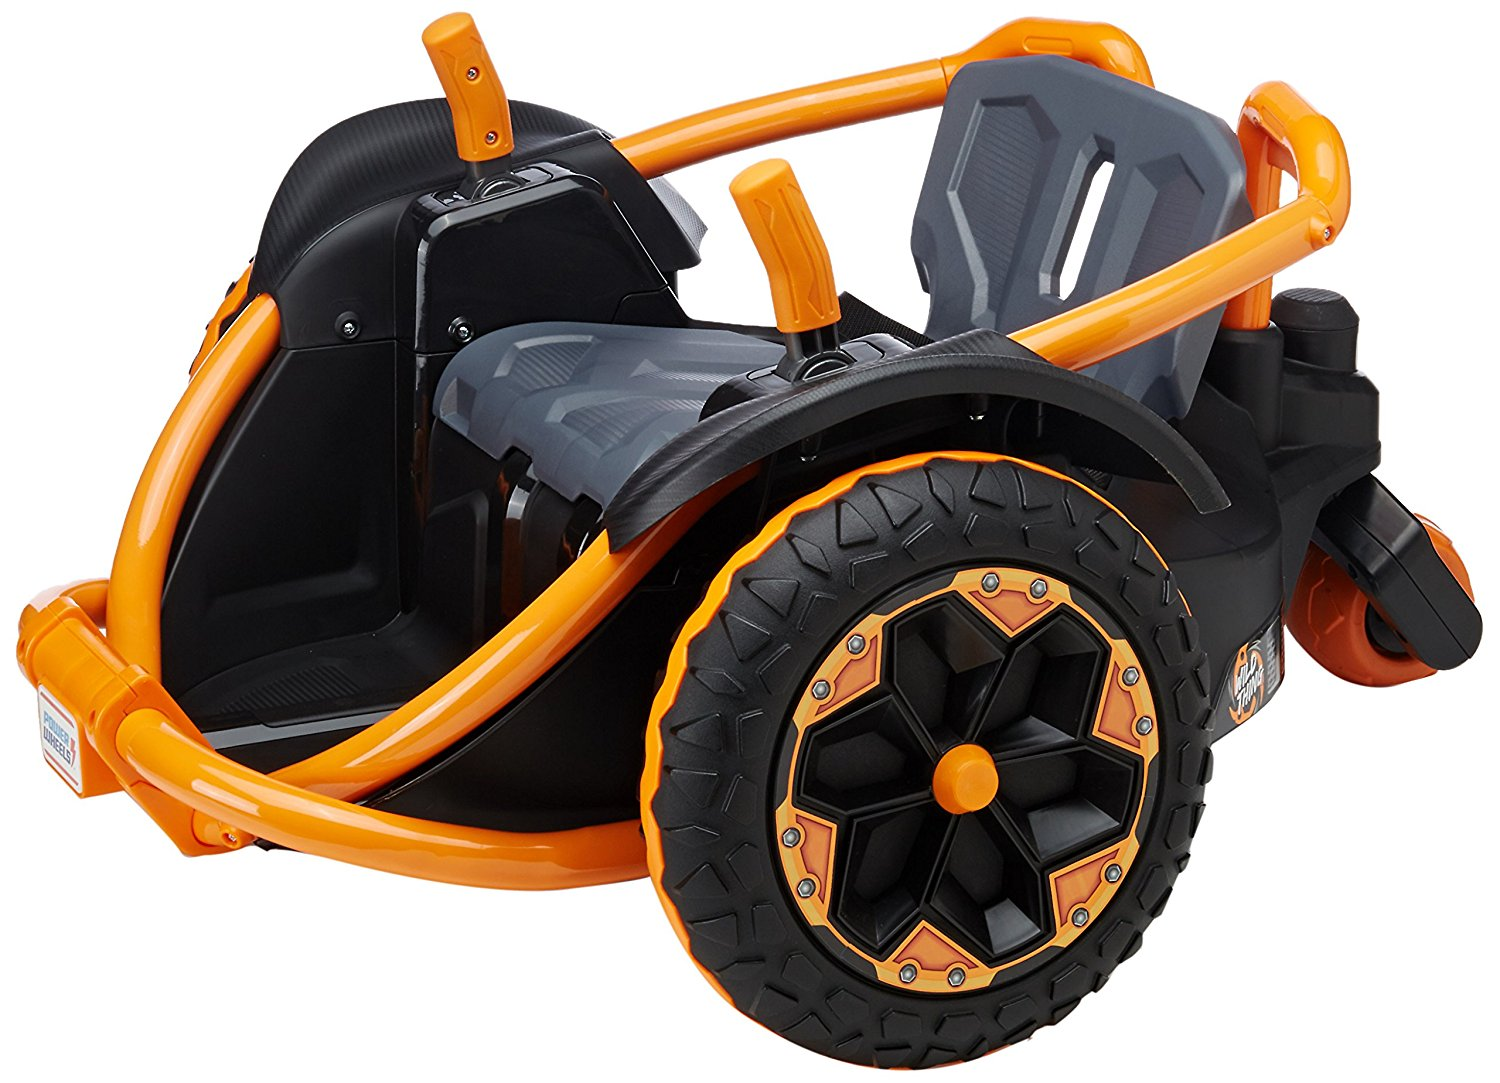 Fisher-Price Power Wheels 12-volt Wild Thing Review - Kids